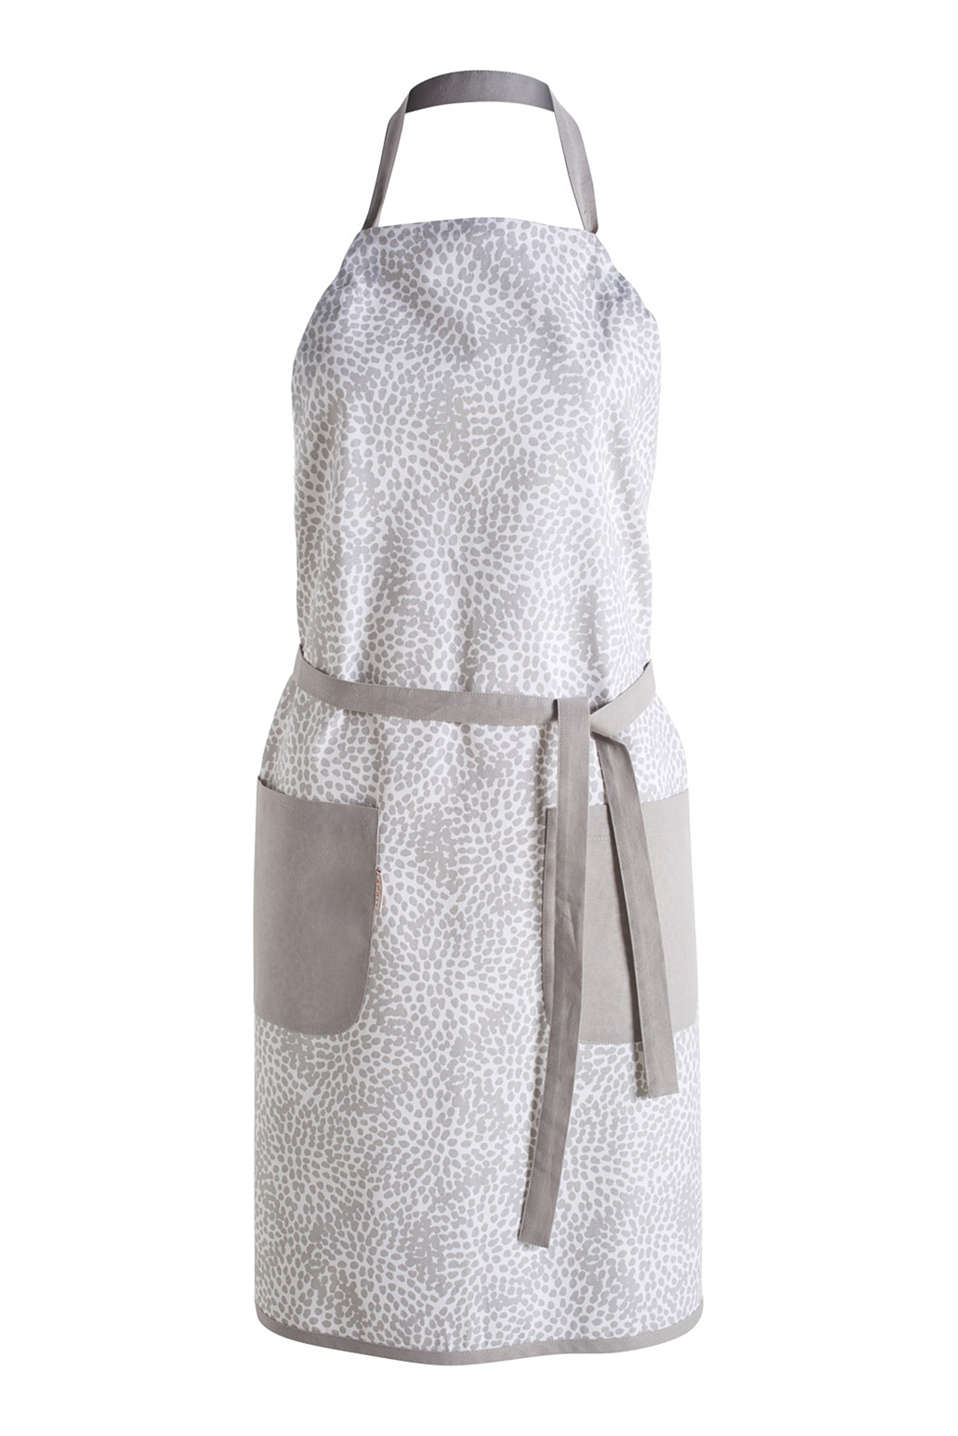 Esprit - Livy kitchen apron in 100% cotton